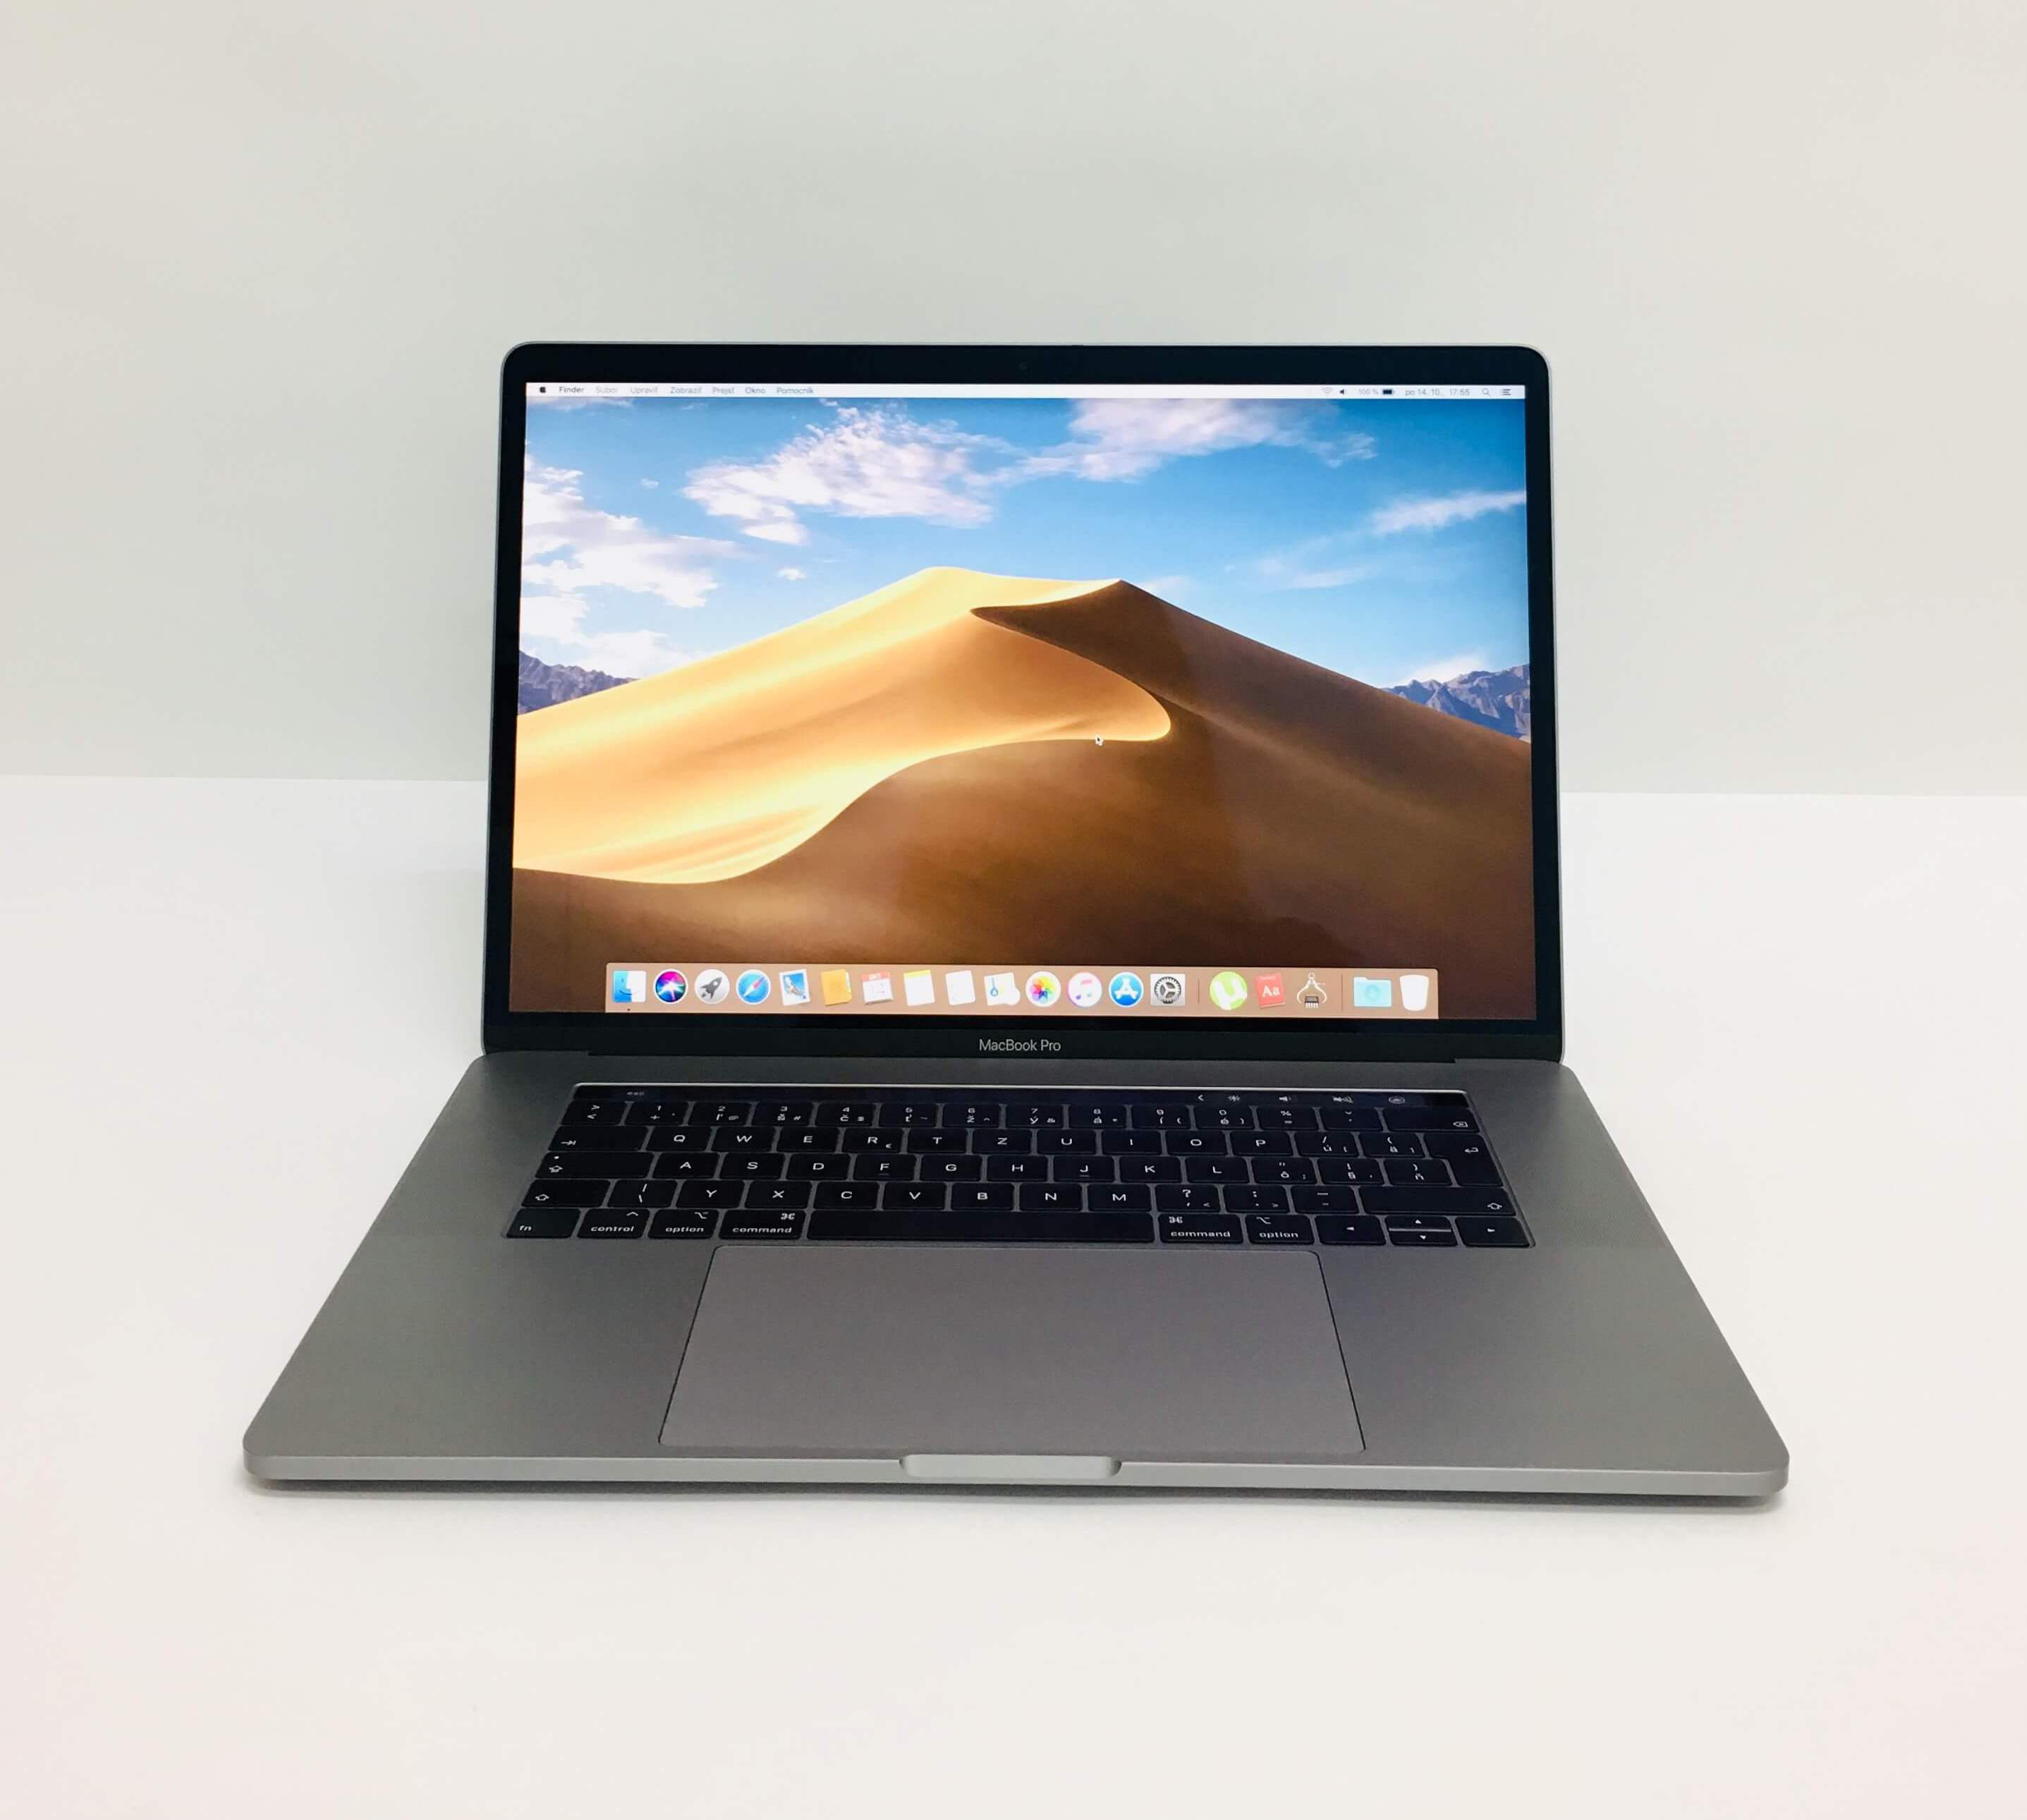 Macbook Pro 15'' Touch Bar, Space Gray, i7, rok 2018, 16GB RAM, 512GB SSD